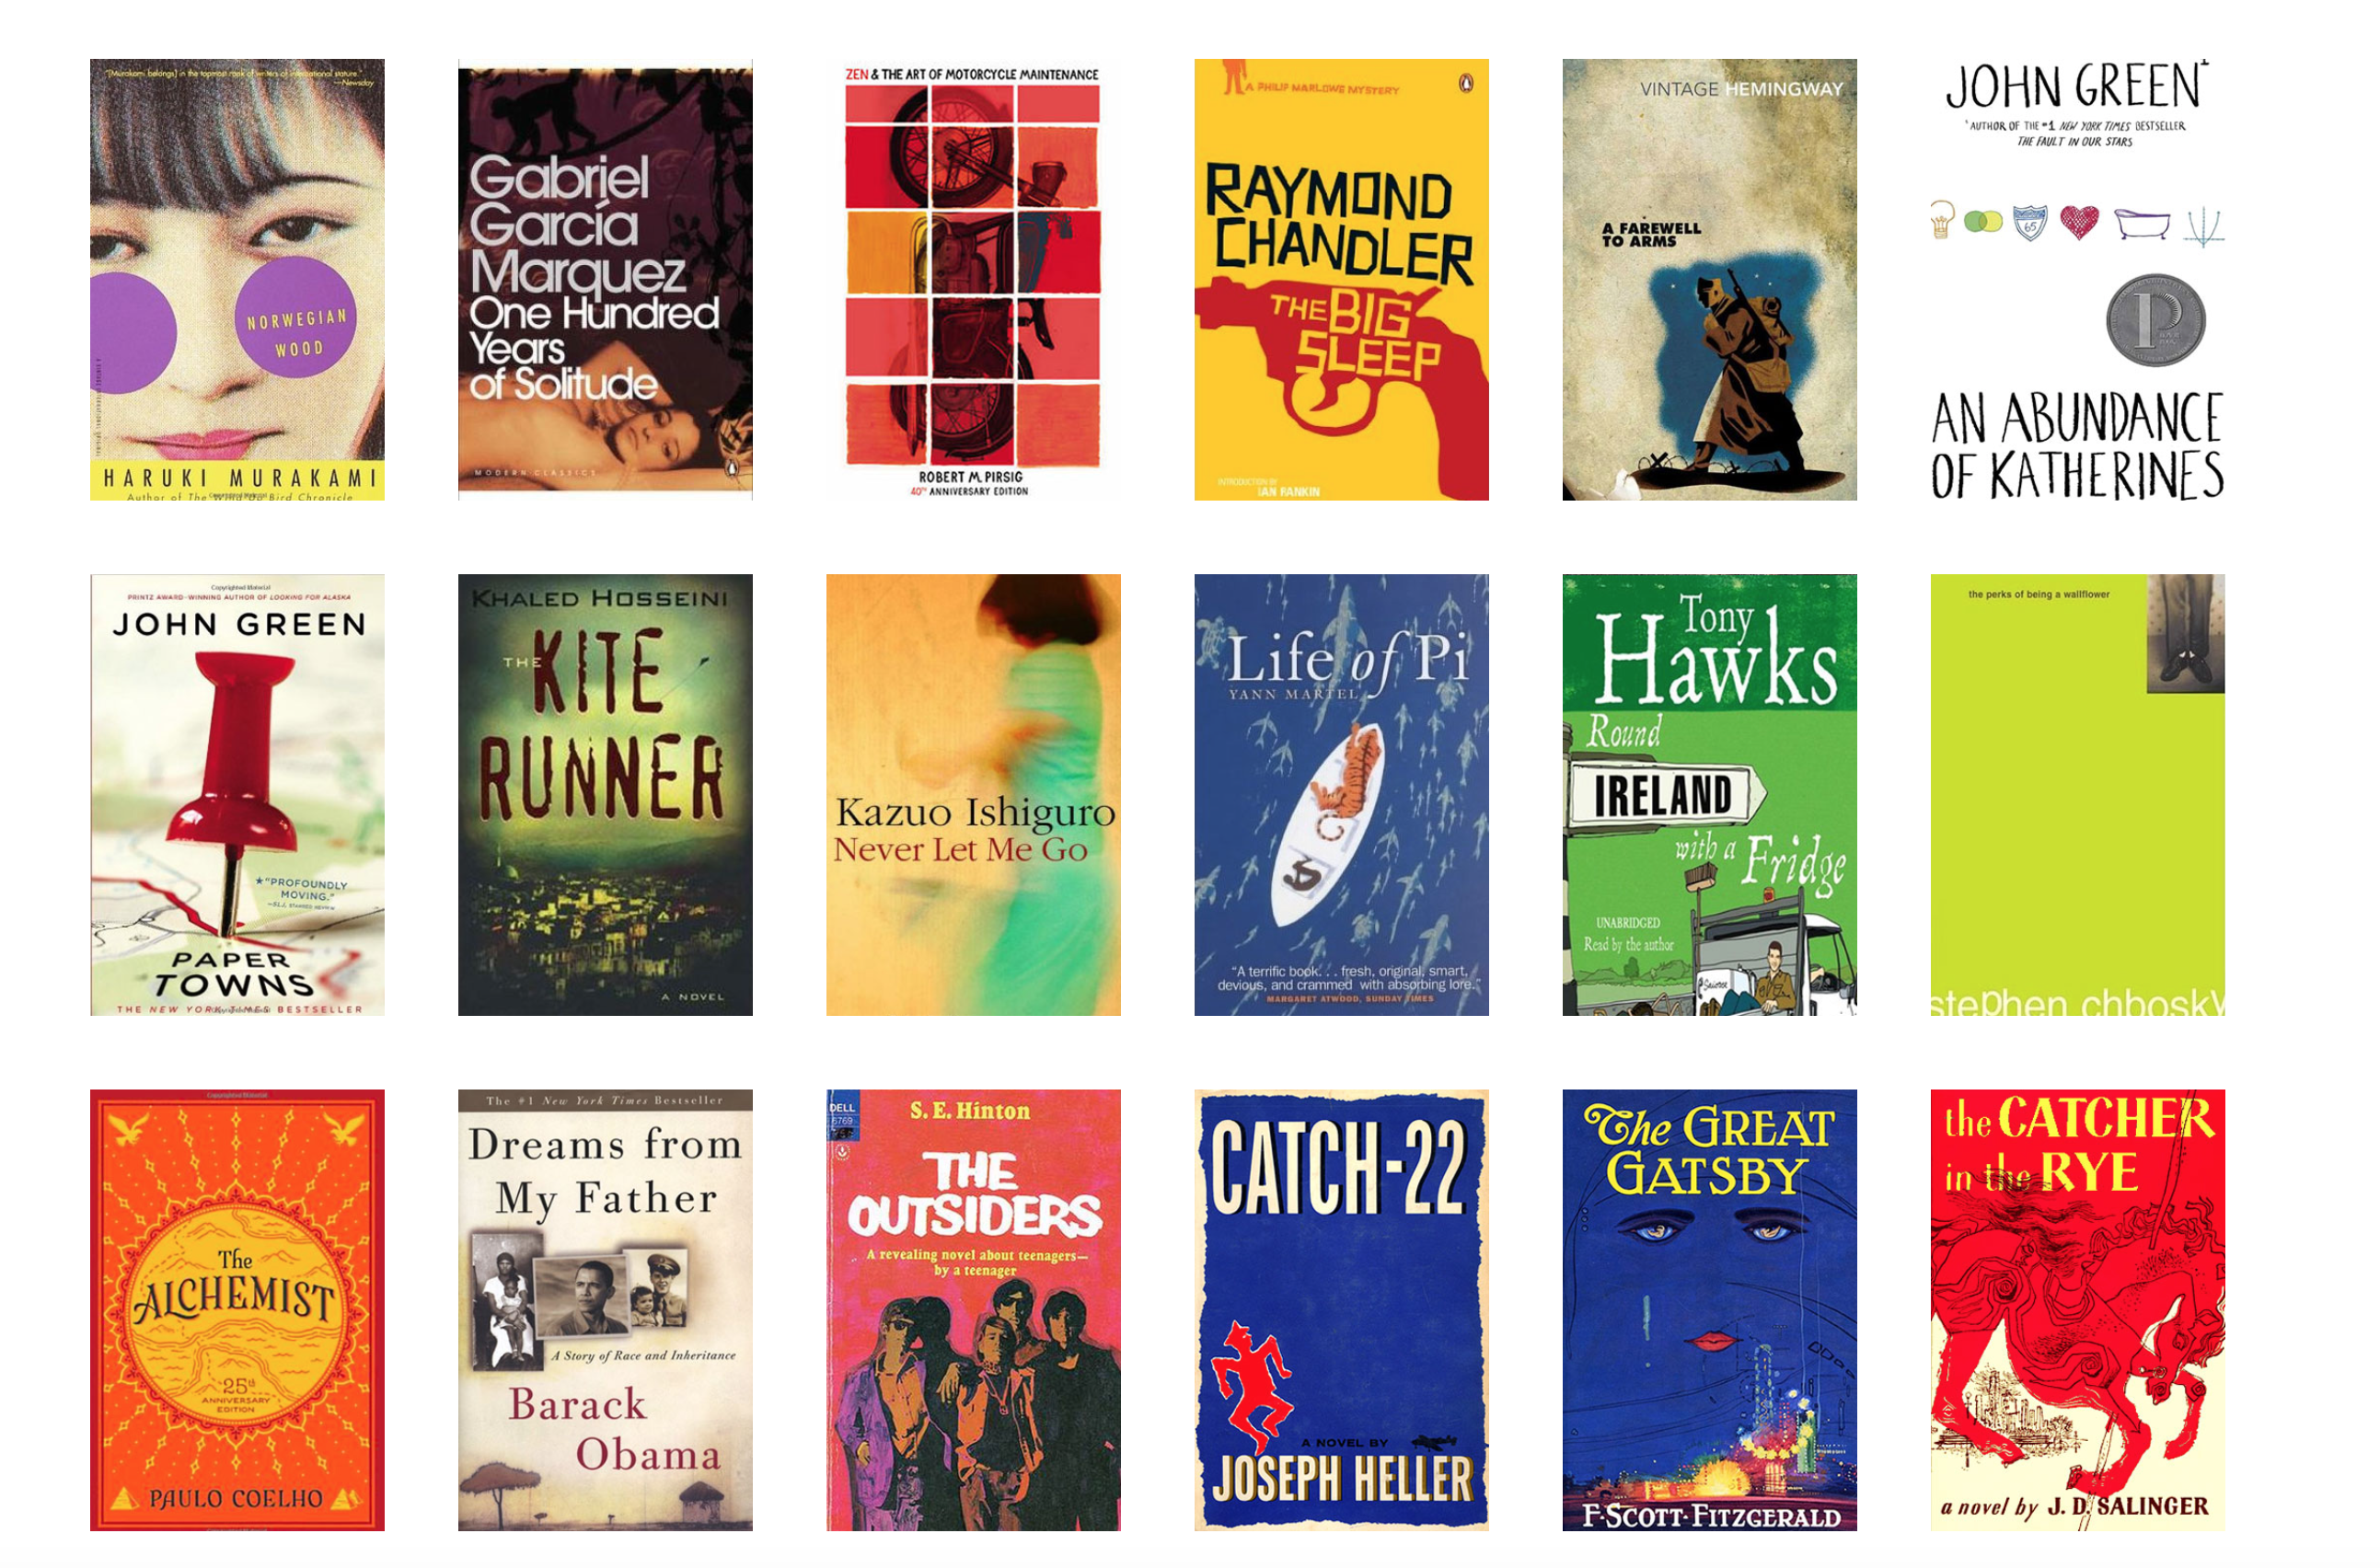 This website recommends novels by making sure you can't judge a book by its cover